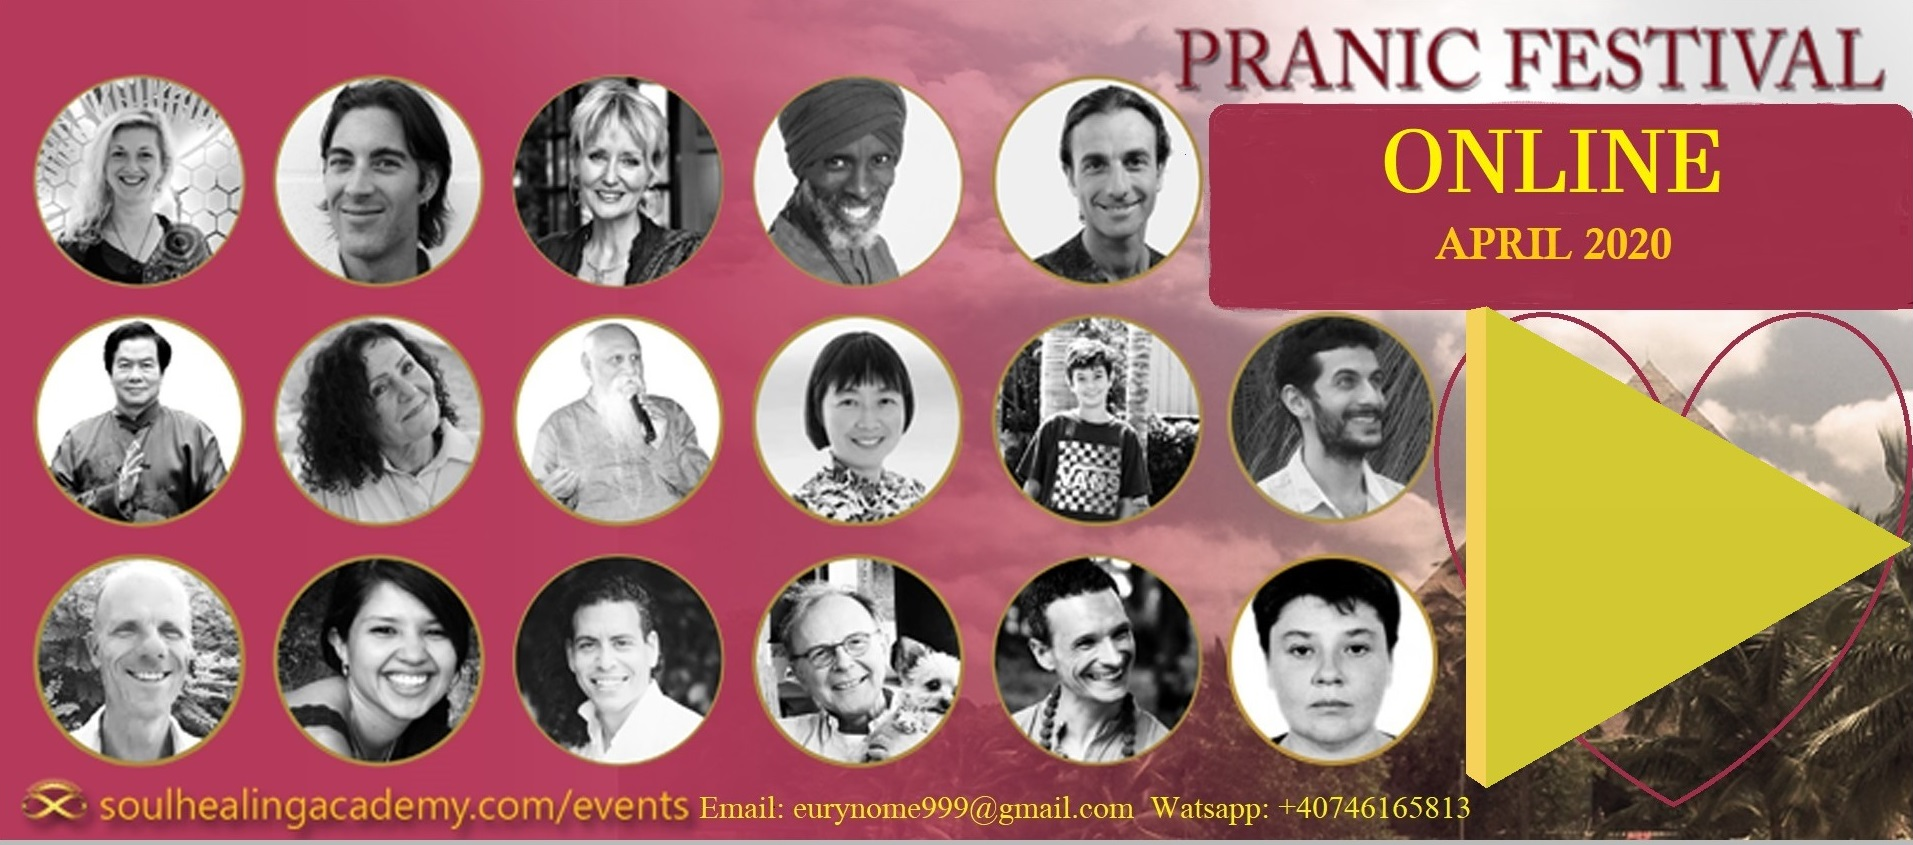 Pranic Festival Online – Solutions in Times of Change